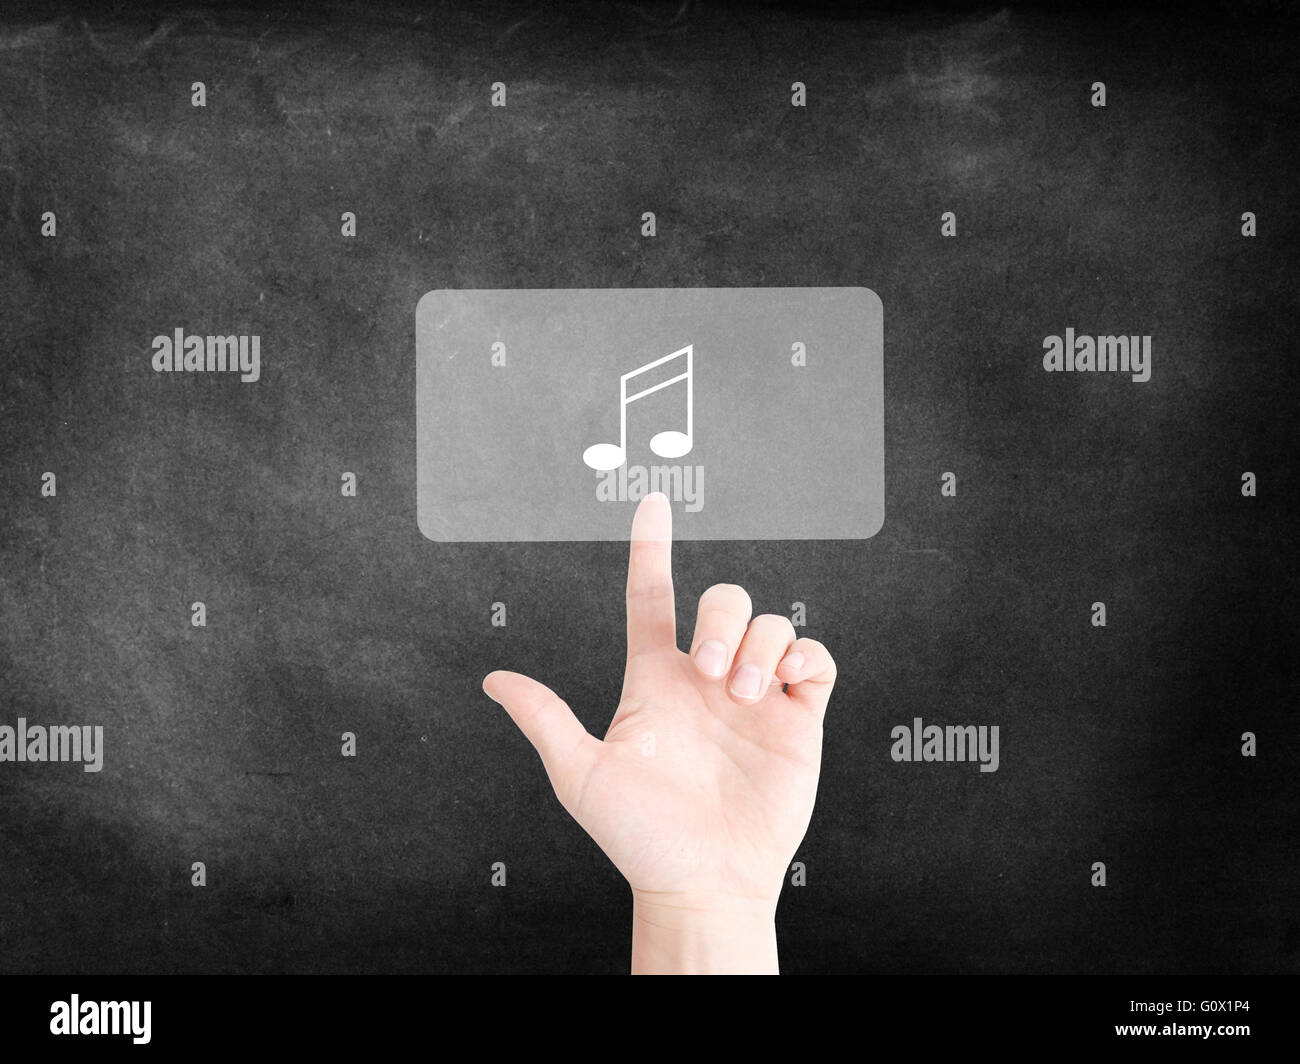 Finger tapping on an icon to symbolize music - Stock Image